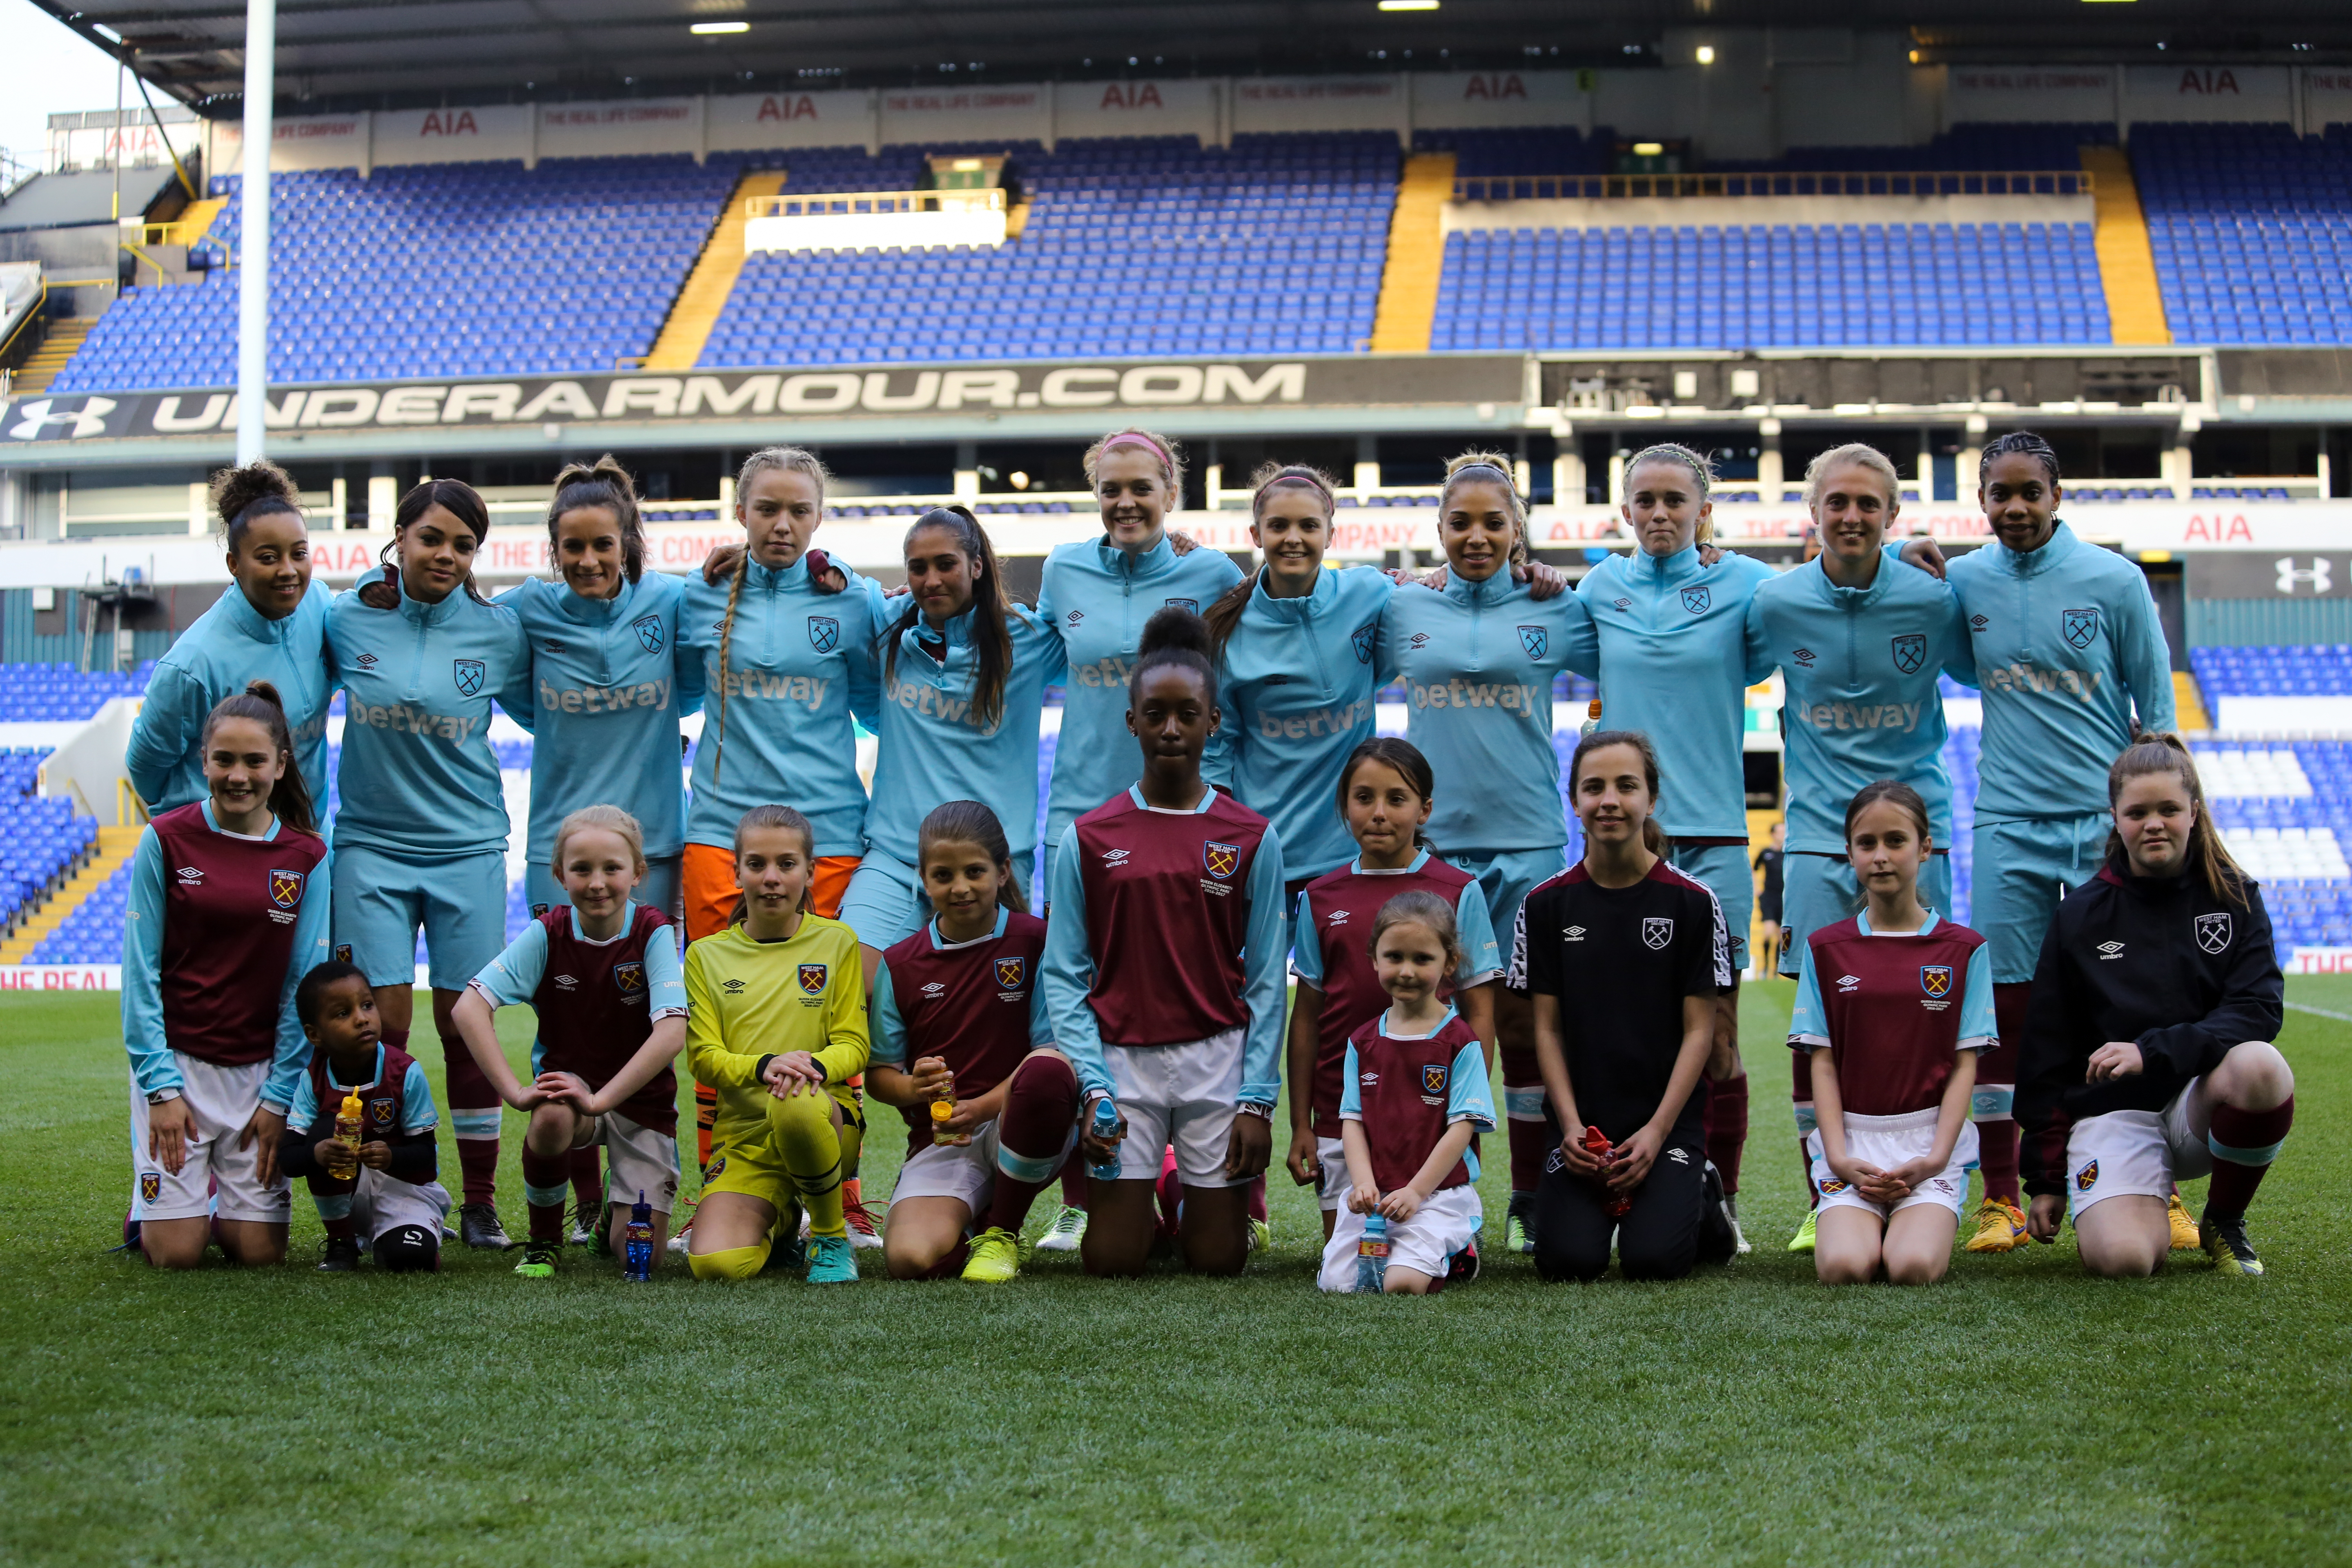 West Ham team with their player escorts in April 2017 prior to a match  against Tottenham Hotspur at White Hart Lane. e27b233f4